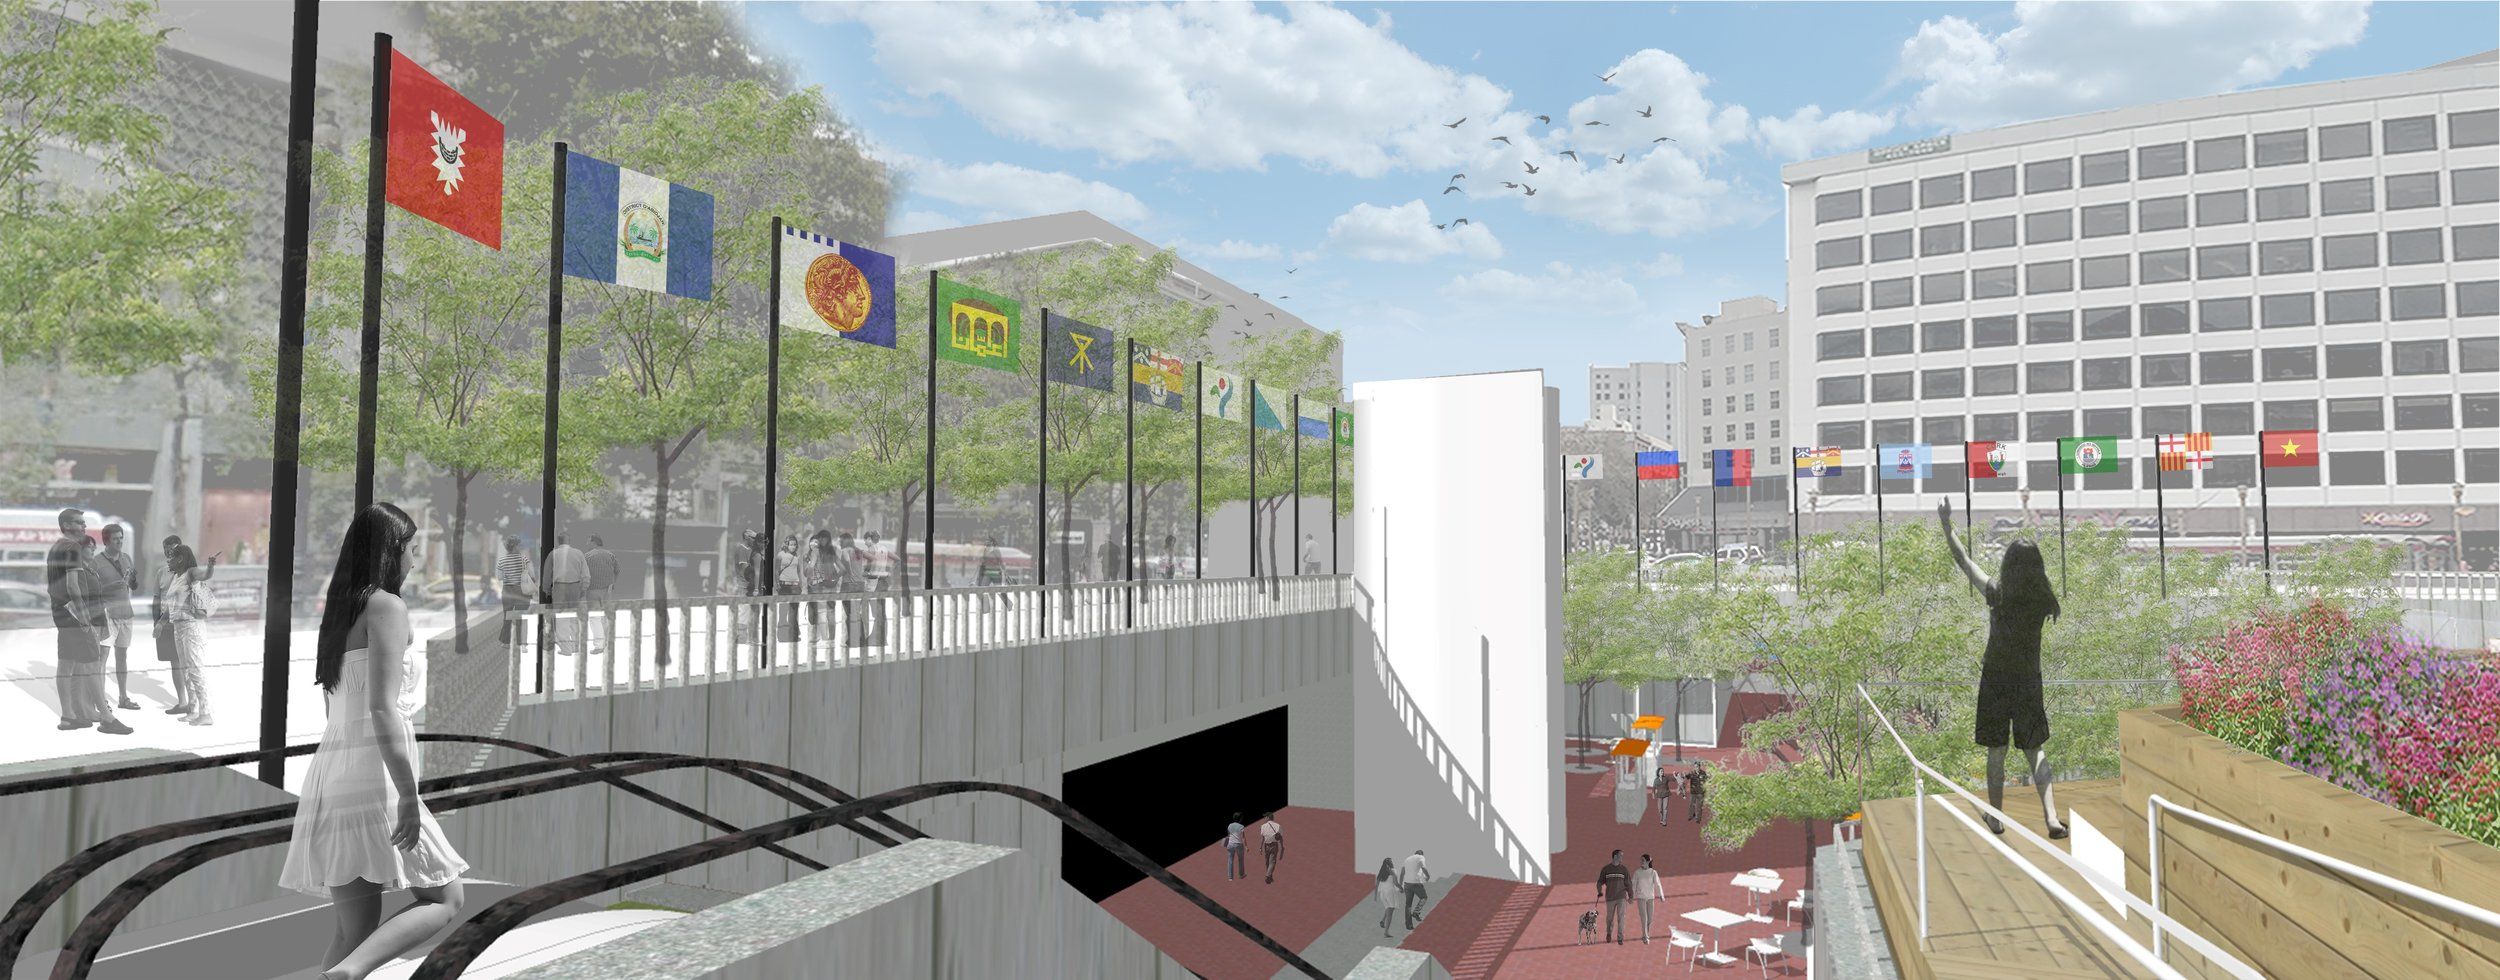 Partnering with SF's Sister Cities to draw international significance to Hallide Plaza